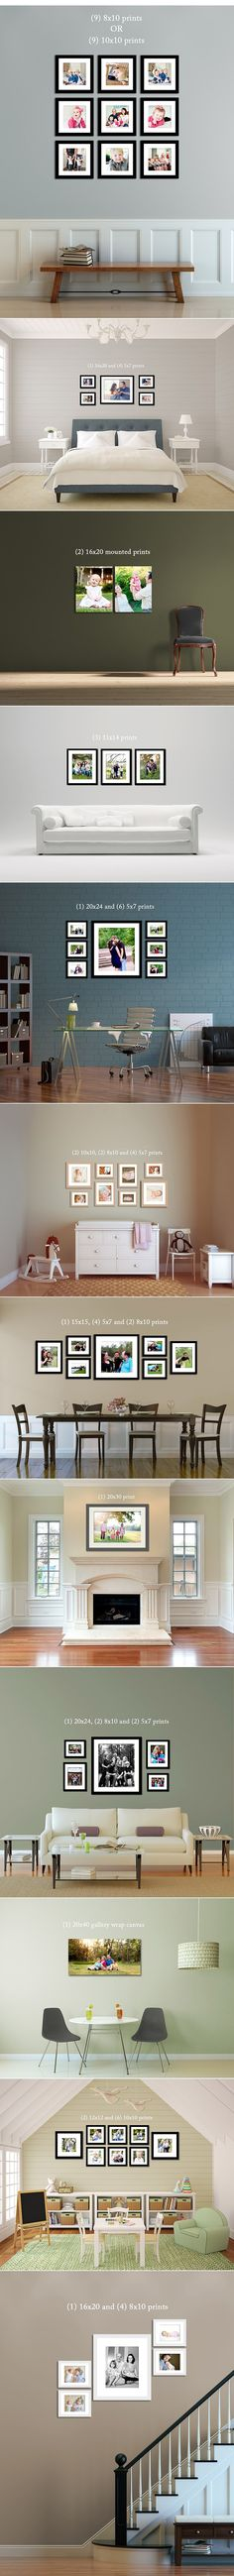 Helpful hints for hanging your art or photos :)